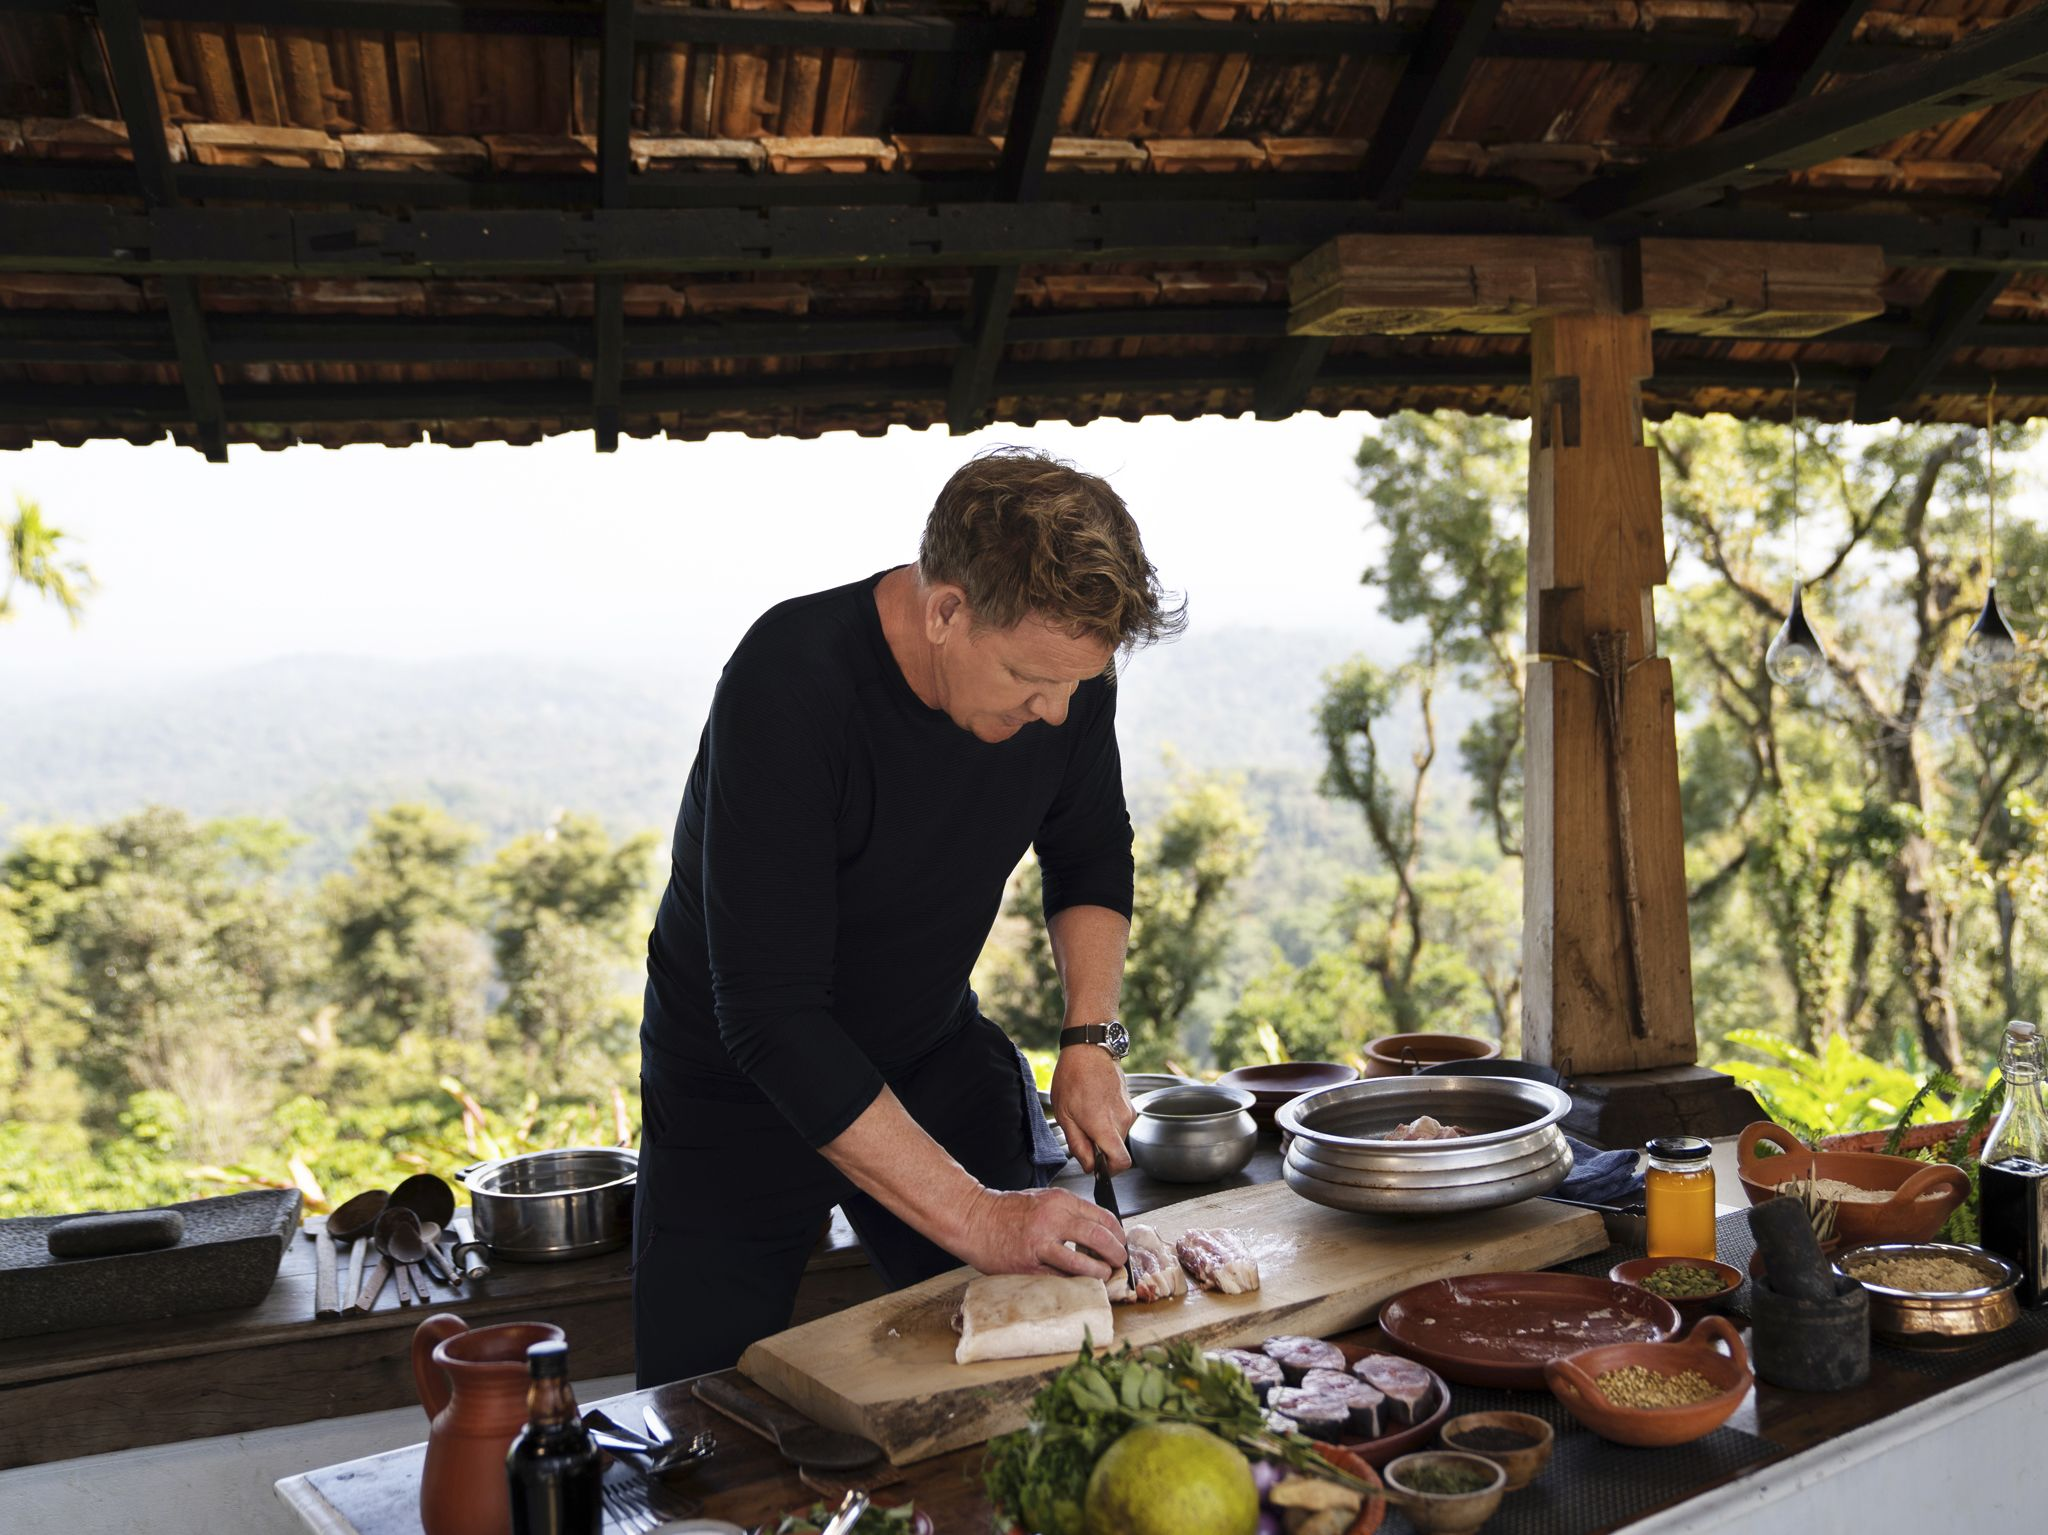 Gordon Ramsay cutting pork during the big cook. This image is from Gordon Ramsay: Uncharted. [Photo of the day - August 2020]